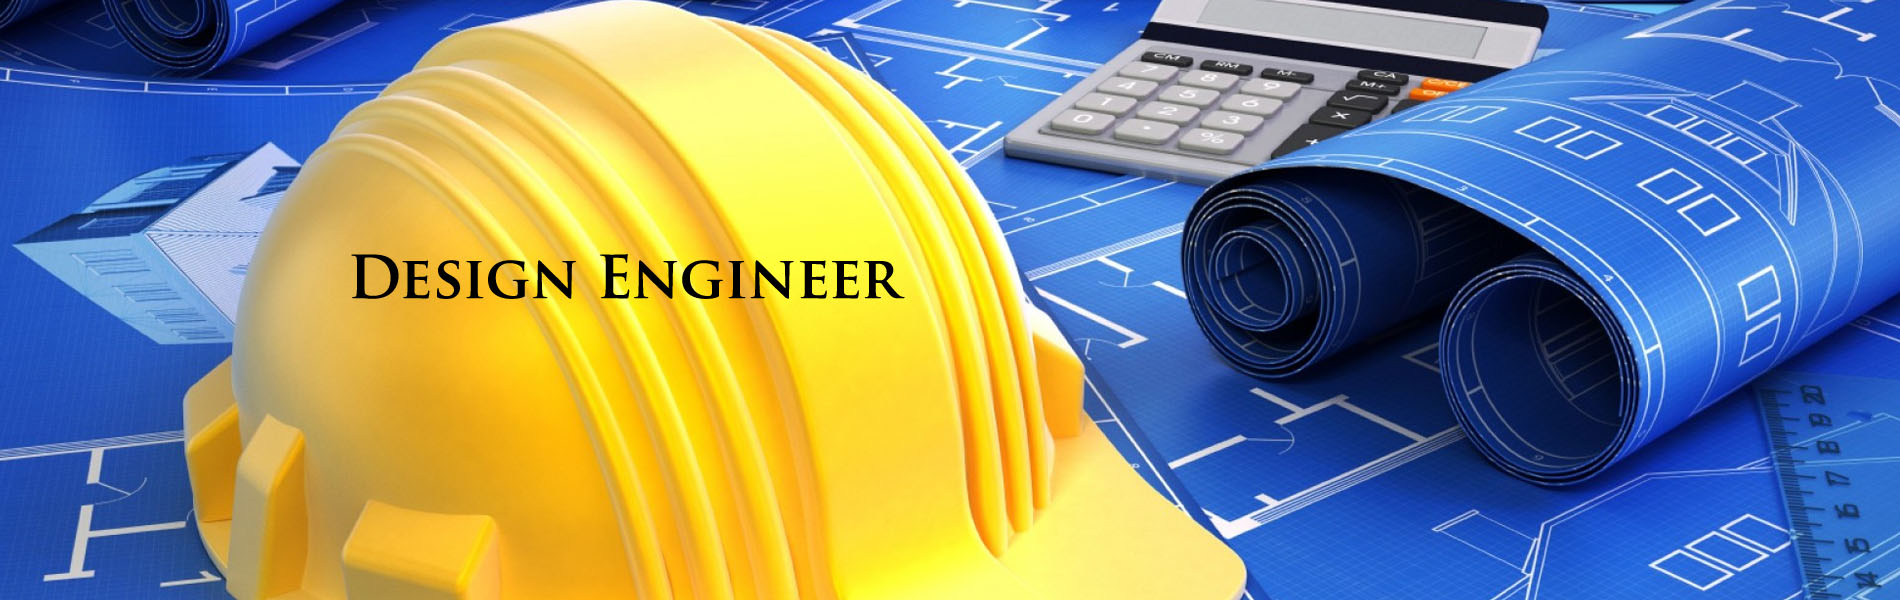 design-engineer, Arya Logo, Arya College of Engineering and iT, Arya 1st Old Campus, Arya SP42, Arya College Jaipur, Arya College, ACEIT, Best Engineering College in Rajasthan, Arya Kukas, Arya Jaipur, Top 5 Engineering College in Rajasthan